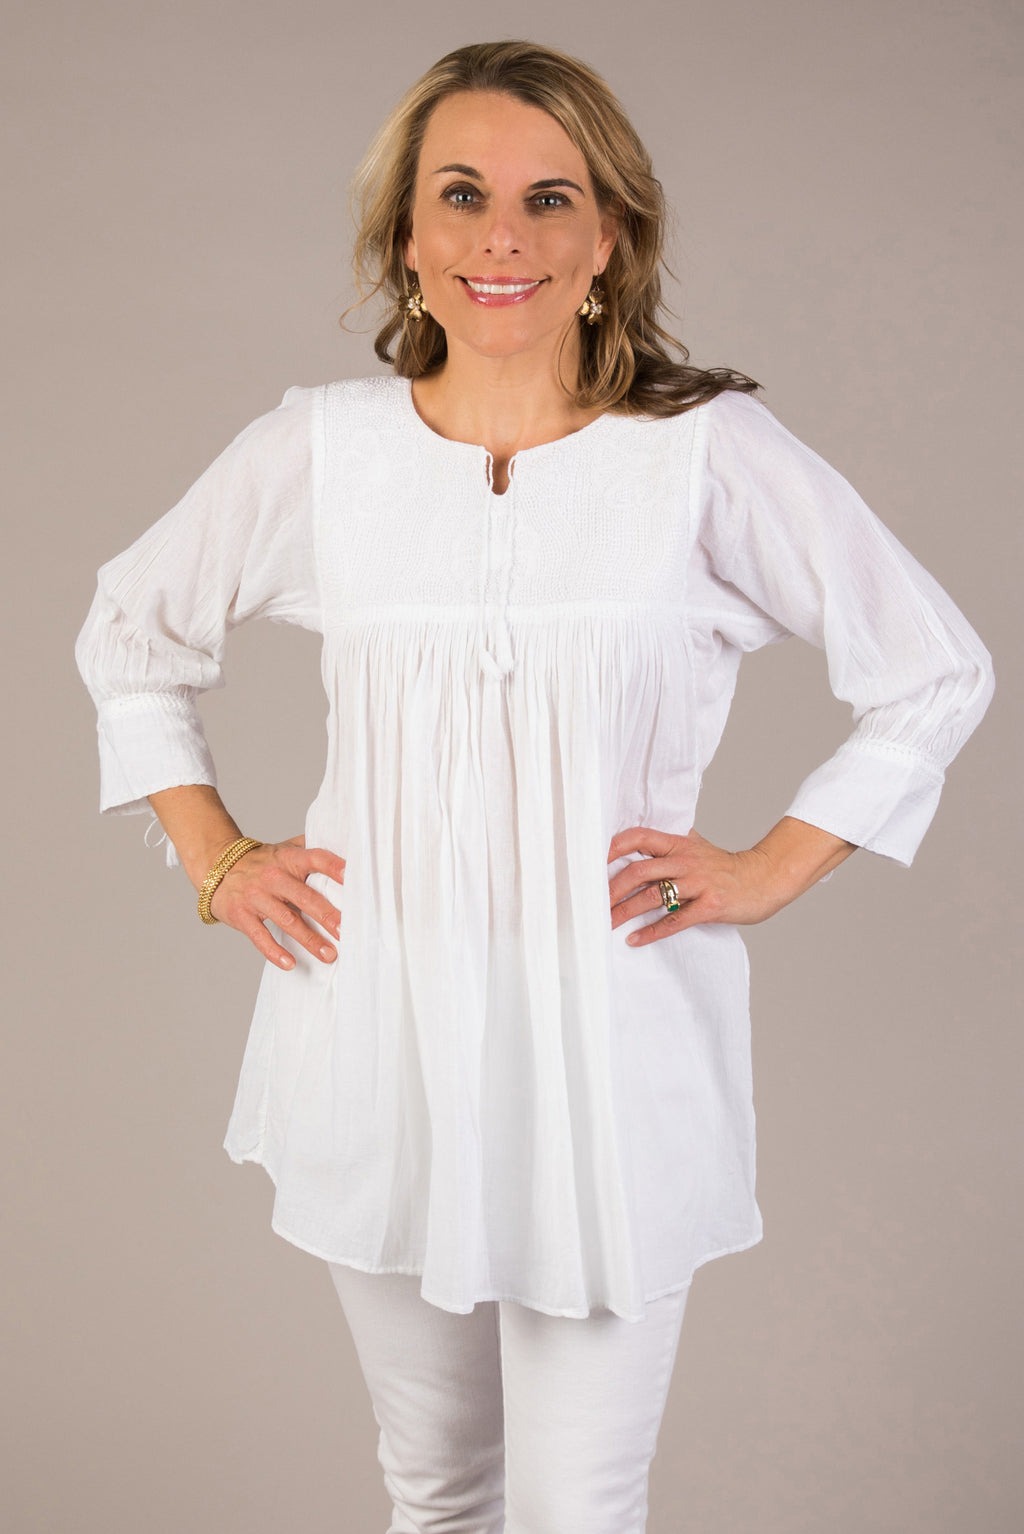 white on white embroidered women's blouse from Mexico hand crafted 3/4 length sleeve